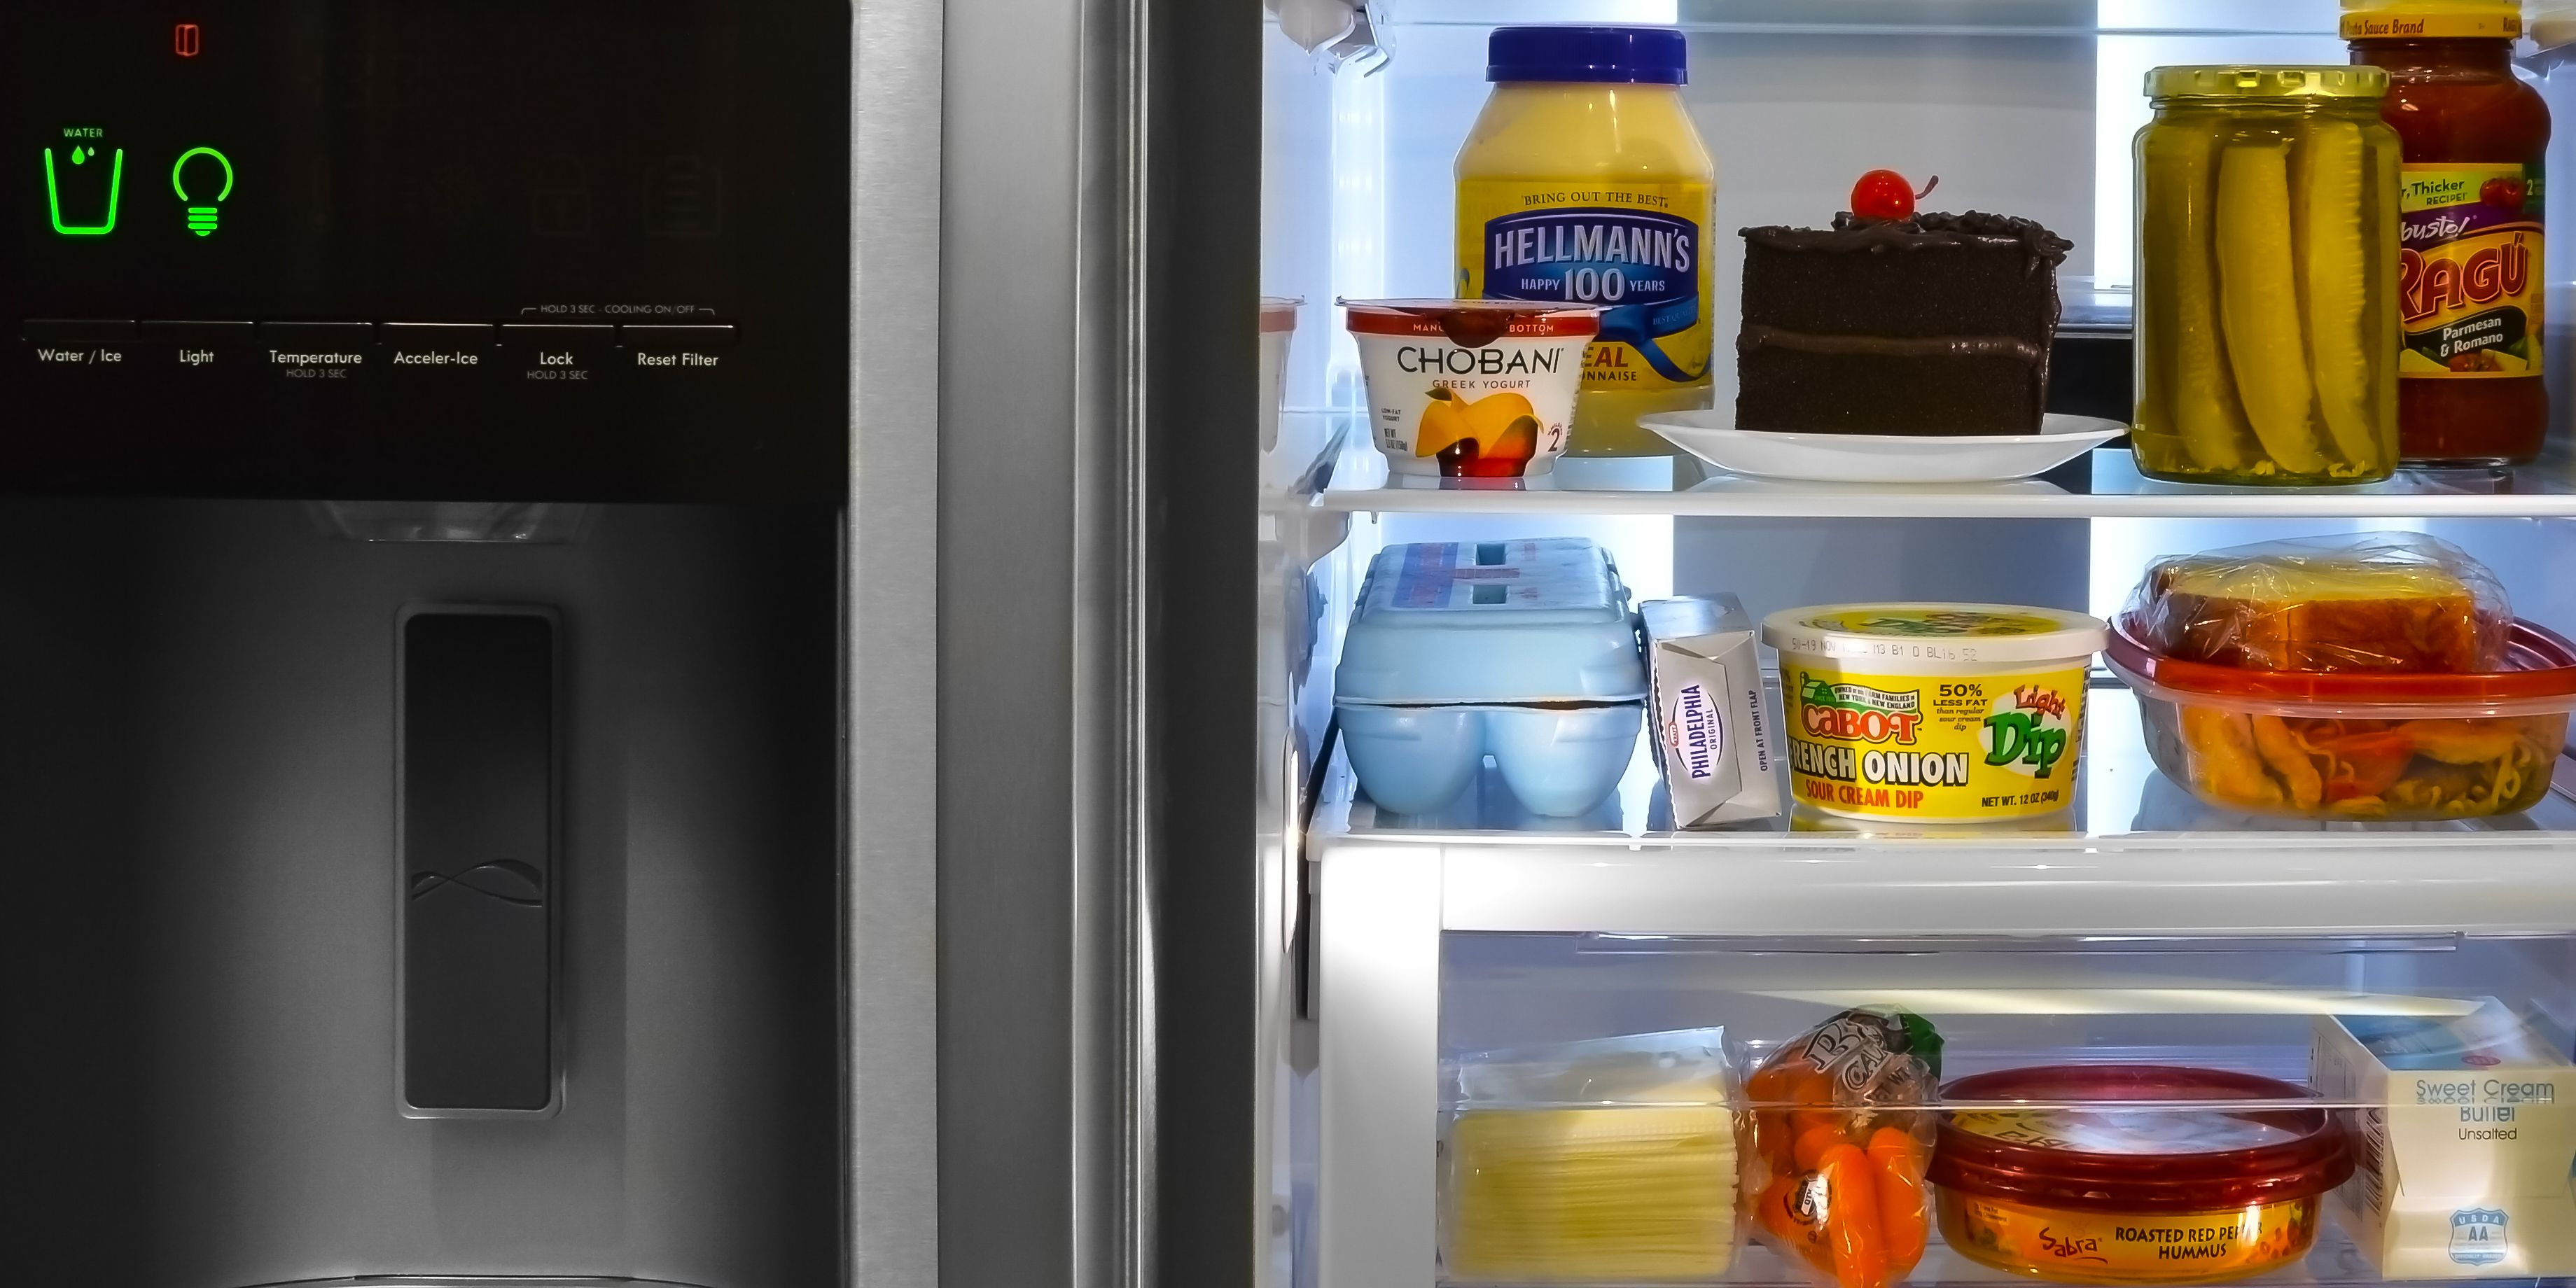 44++ Whats the normal temperature of a refrigerator information